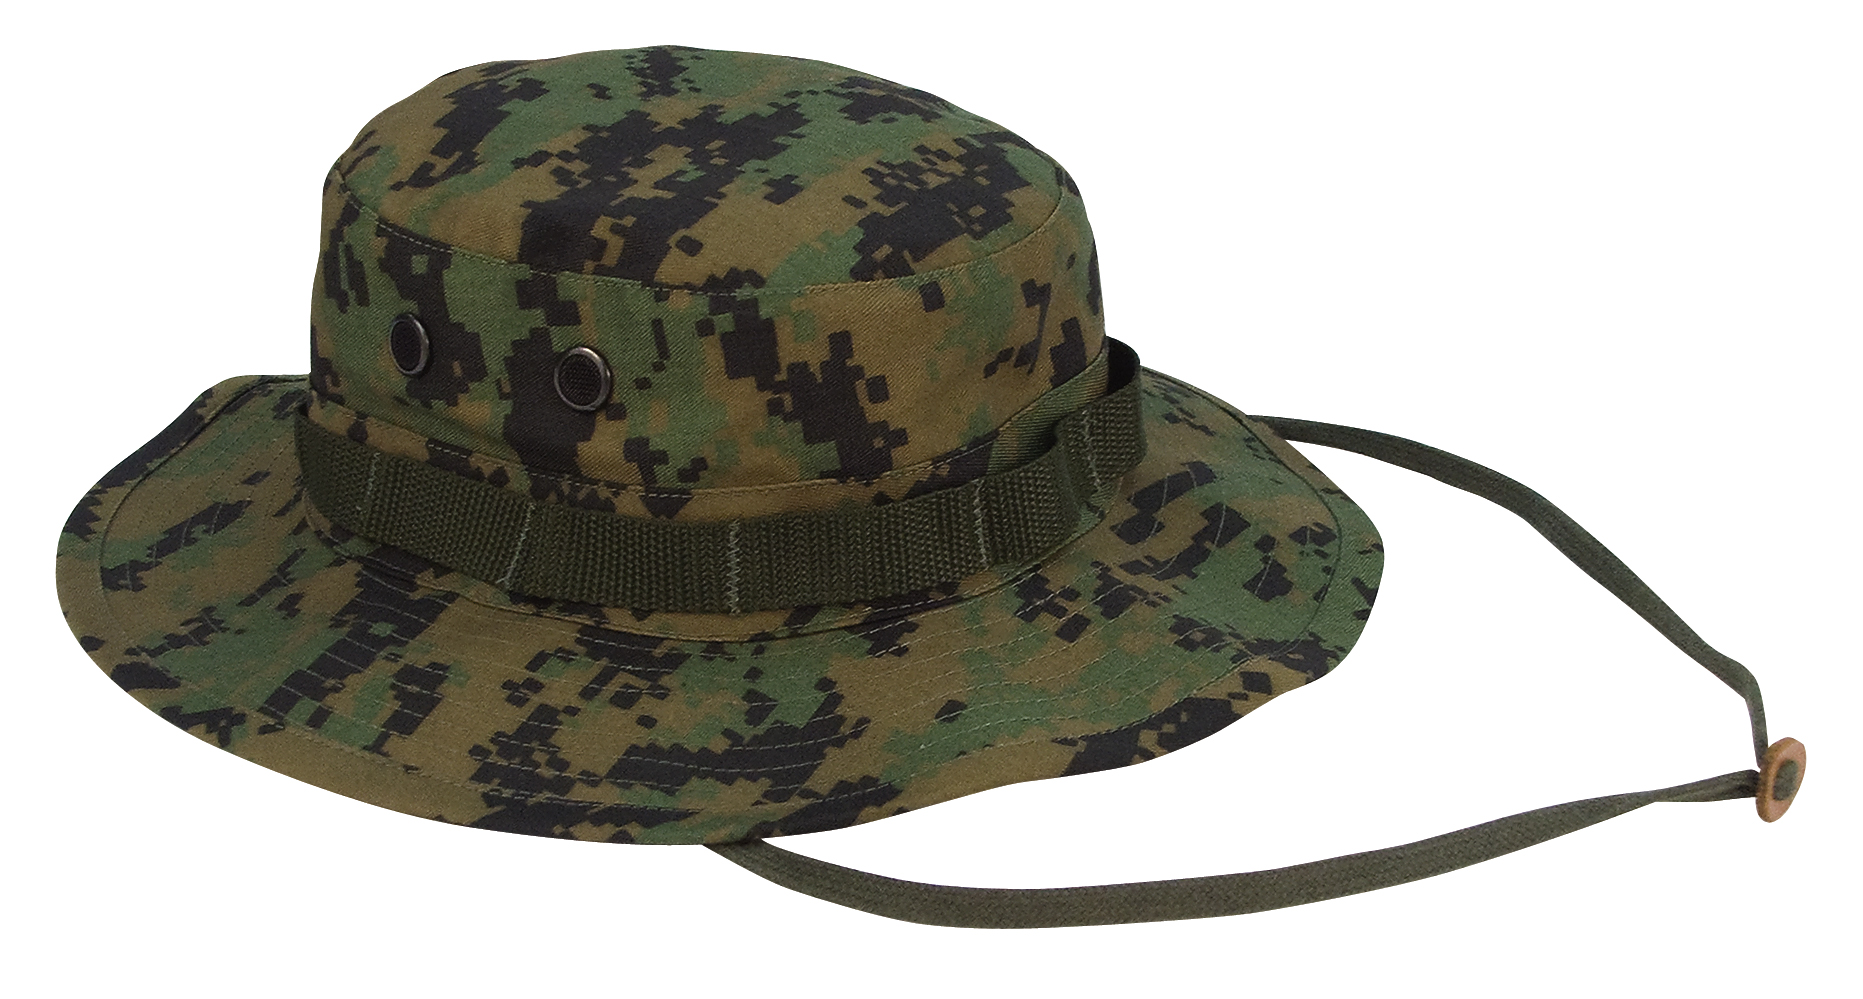 Rothco Military Style Boonie Hat Made To Government Spec